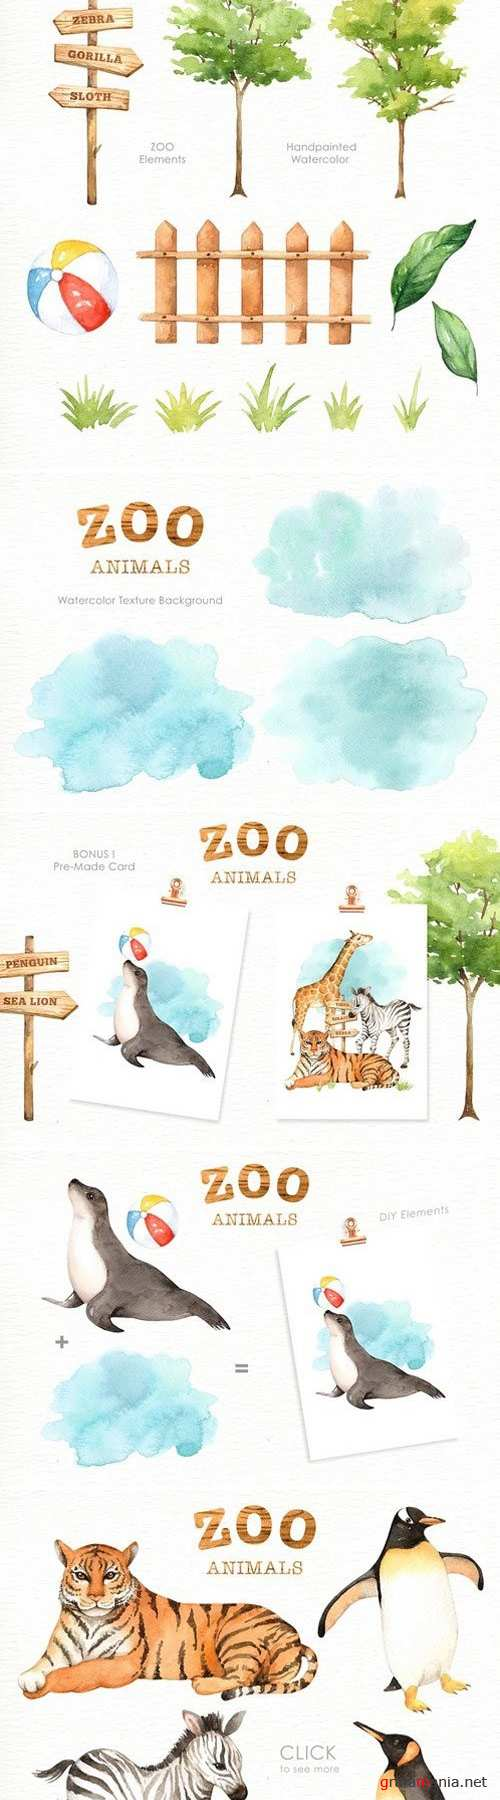 Zoo Animals Watercolor clipart 2401054